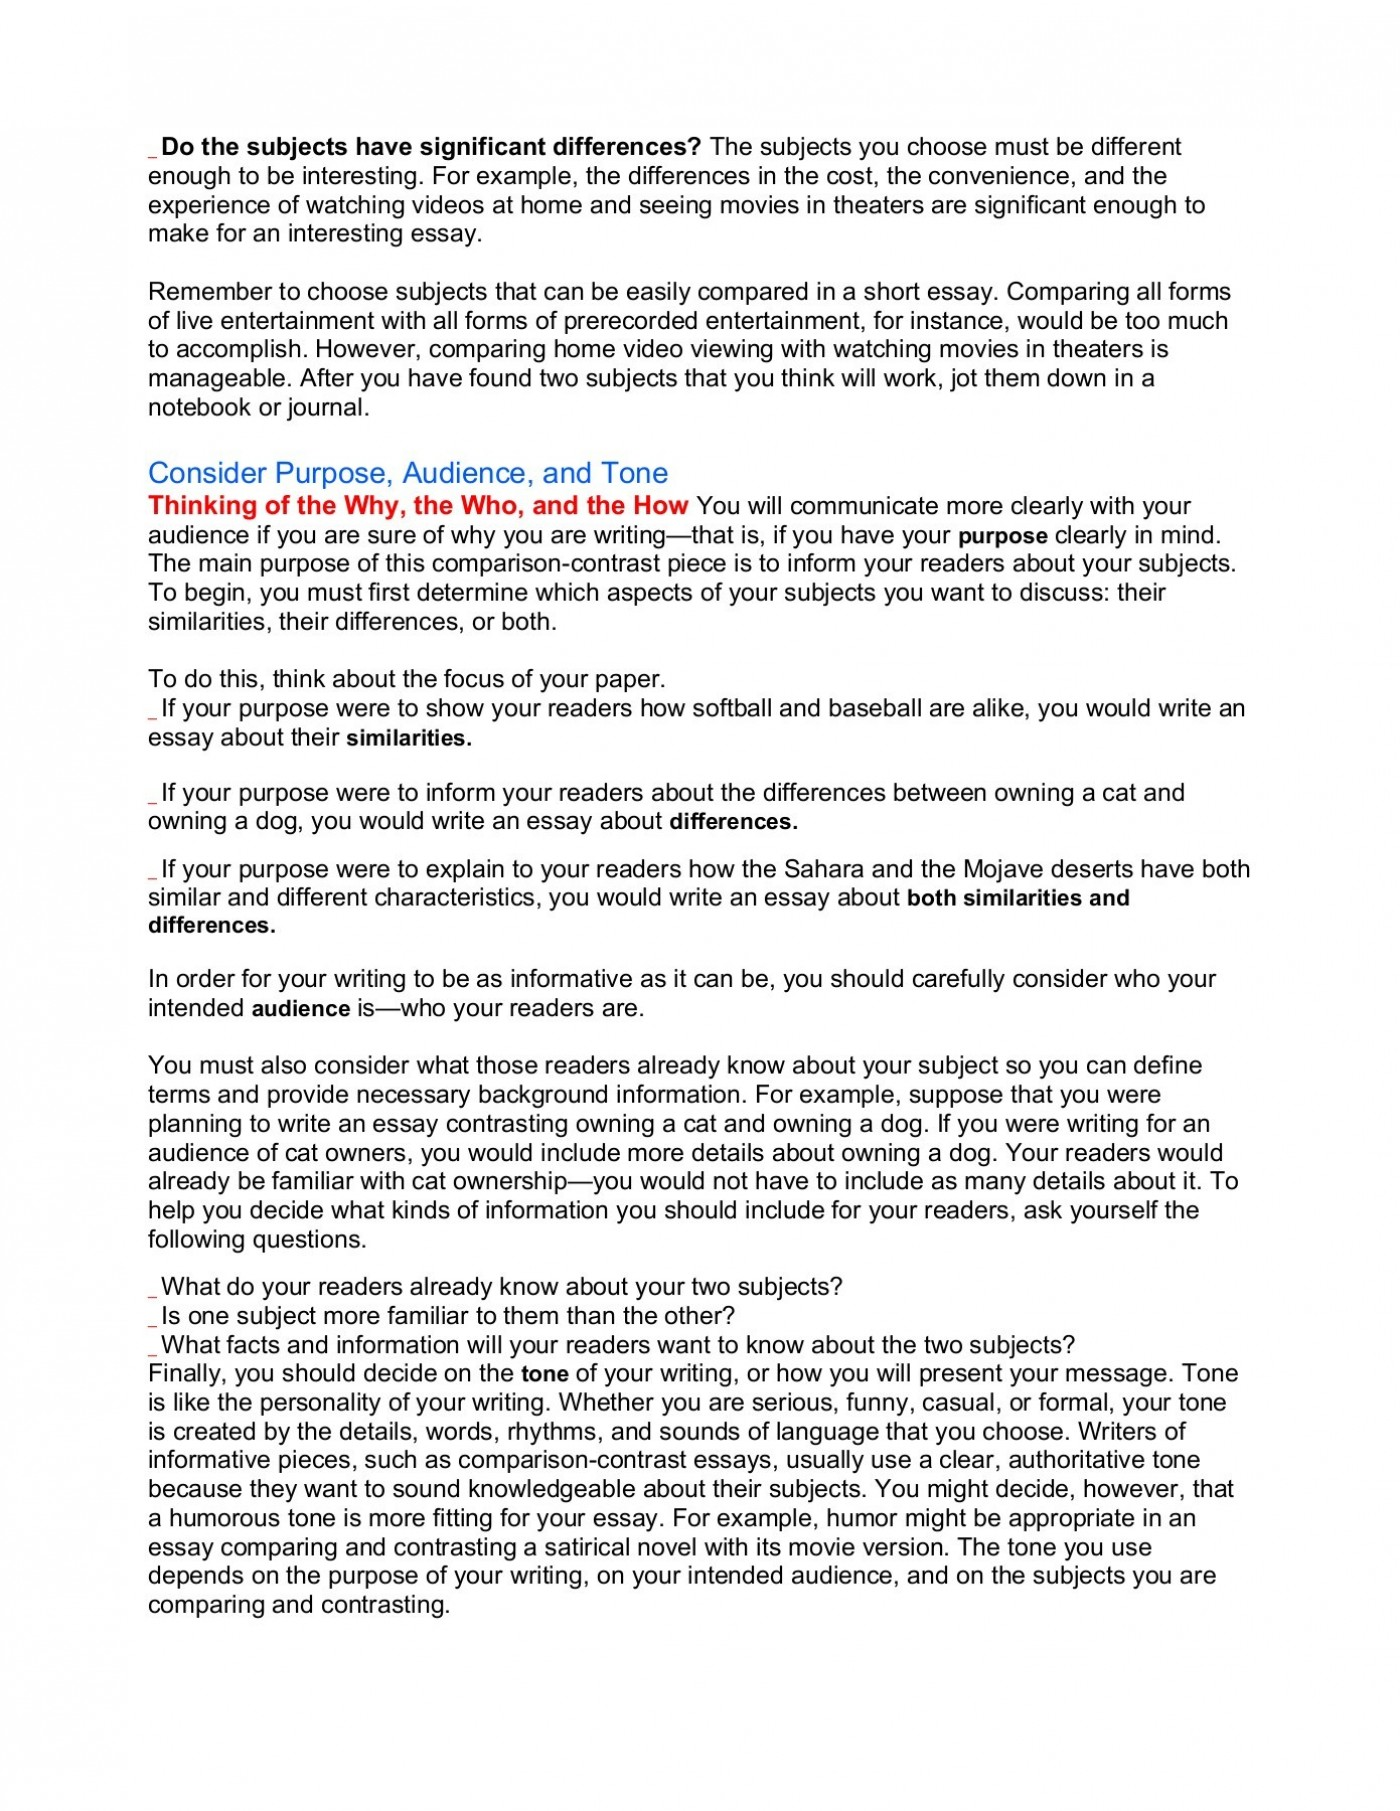 003 Comparing And Contrasting Essay Example Satire